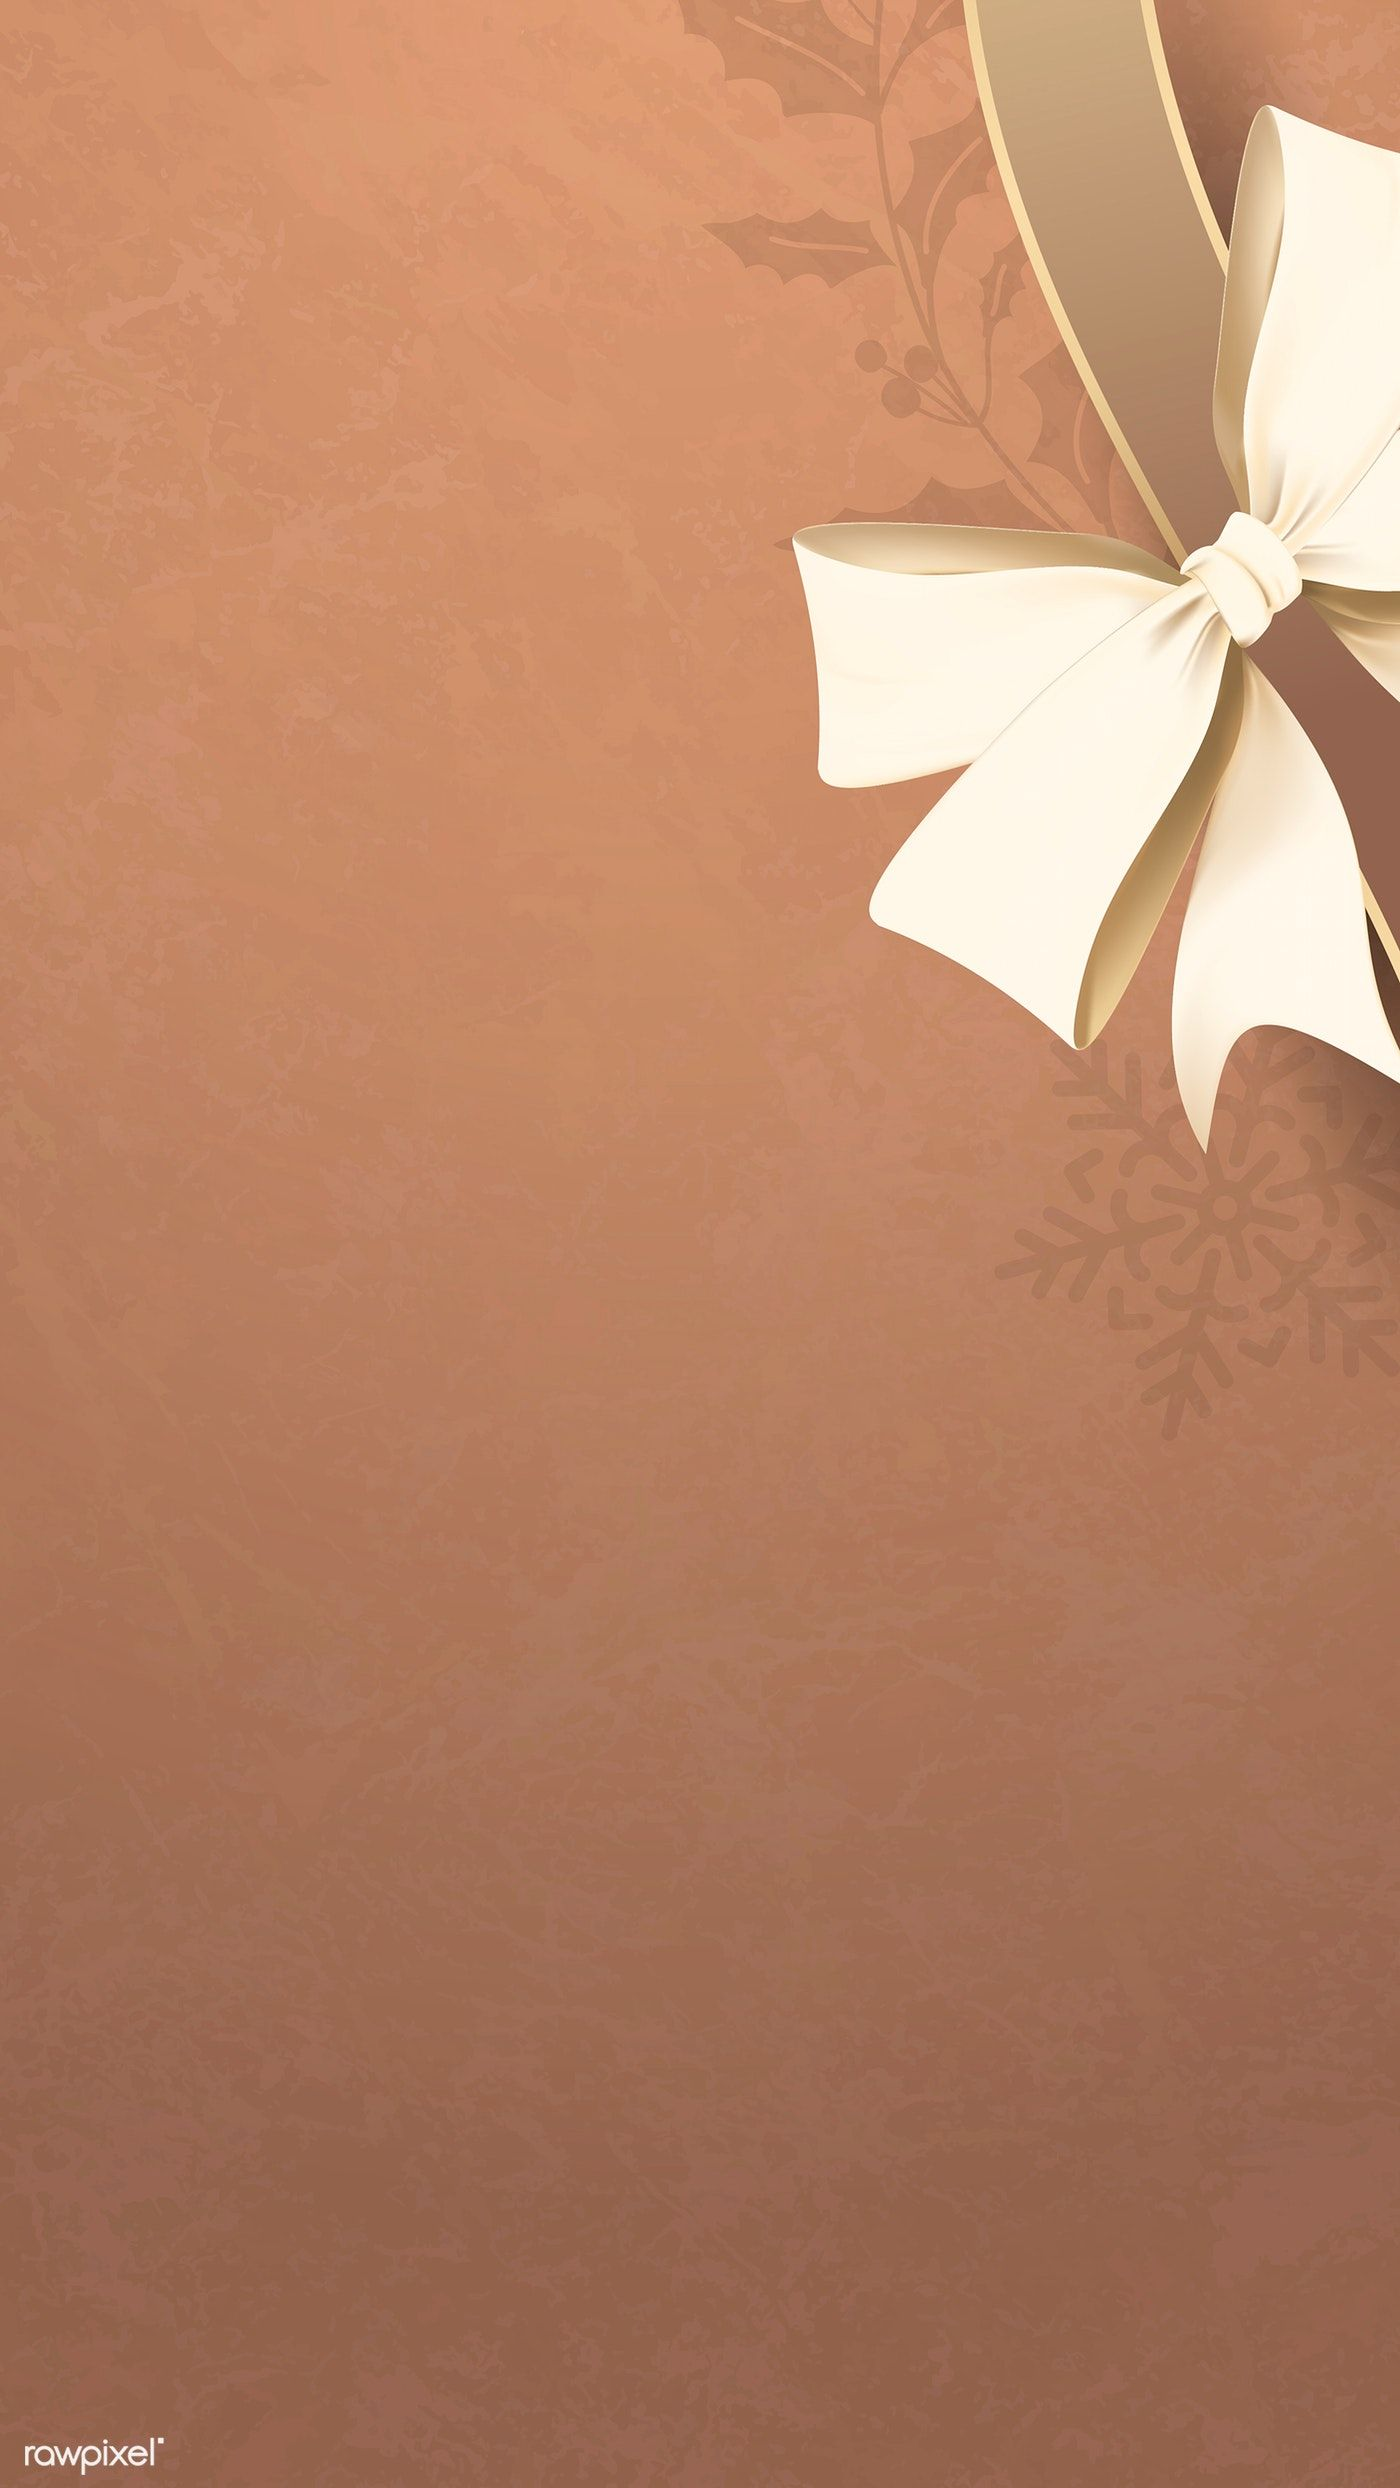 Download Premium Vector Of Gold Ribbon Bow On Brown Background Vector Gold Wallpaper Background Gold Ribbons Floral Border Design